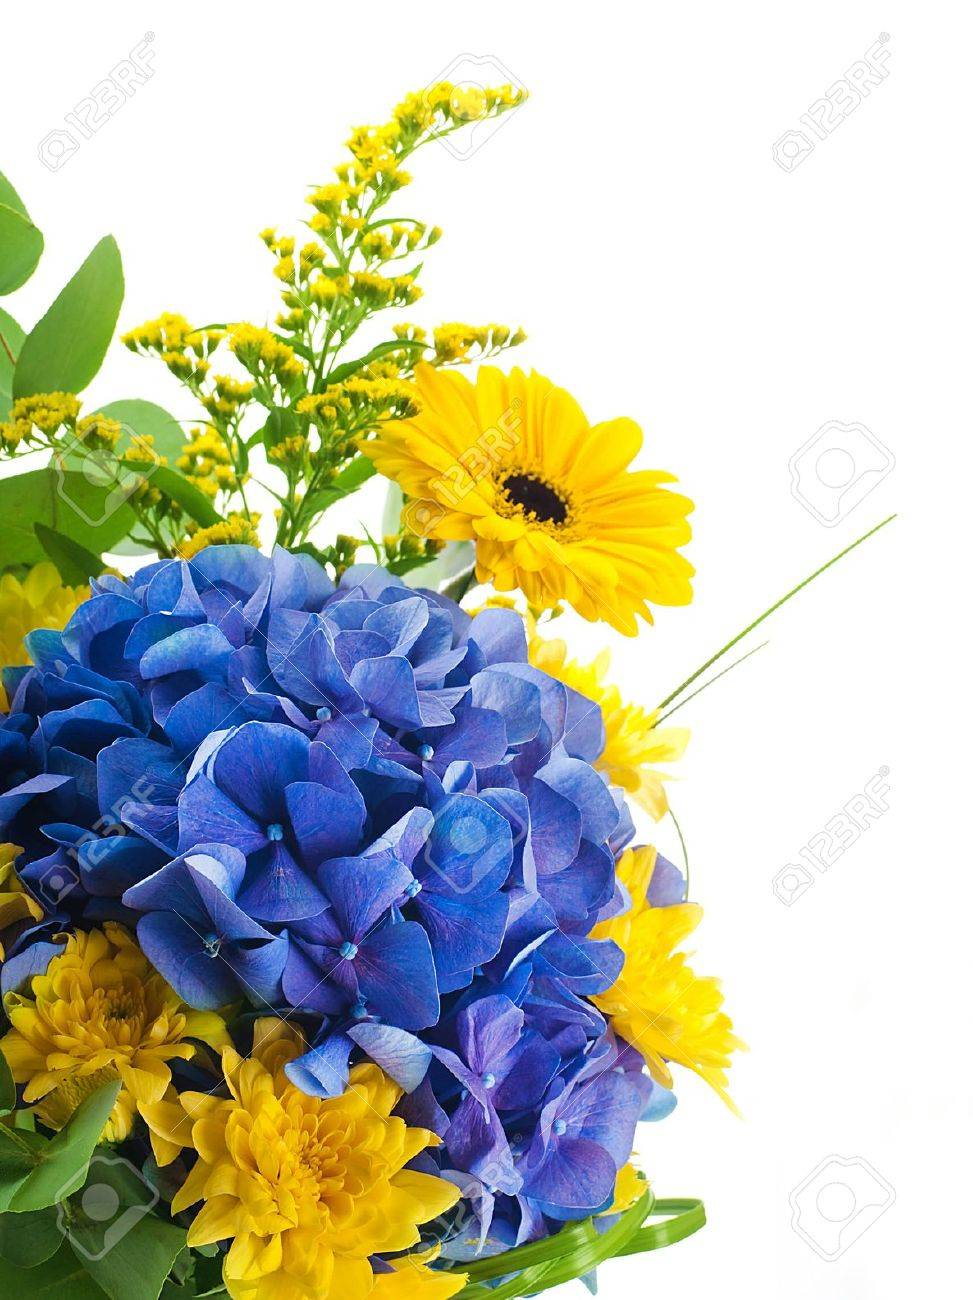 Bouquet Fiori Gialli.Bouquet From Blue Hydrangeas And Yellow Asters A Flower